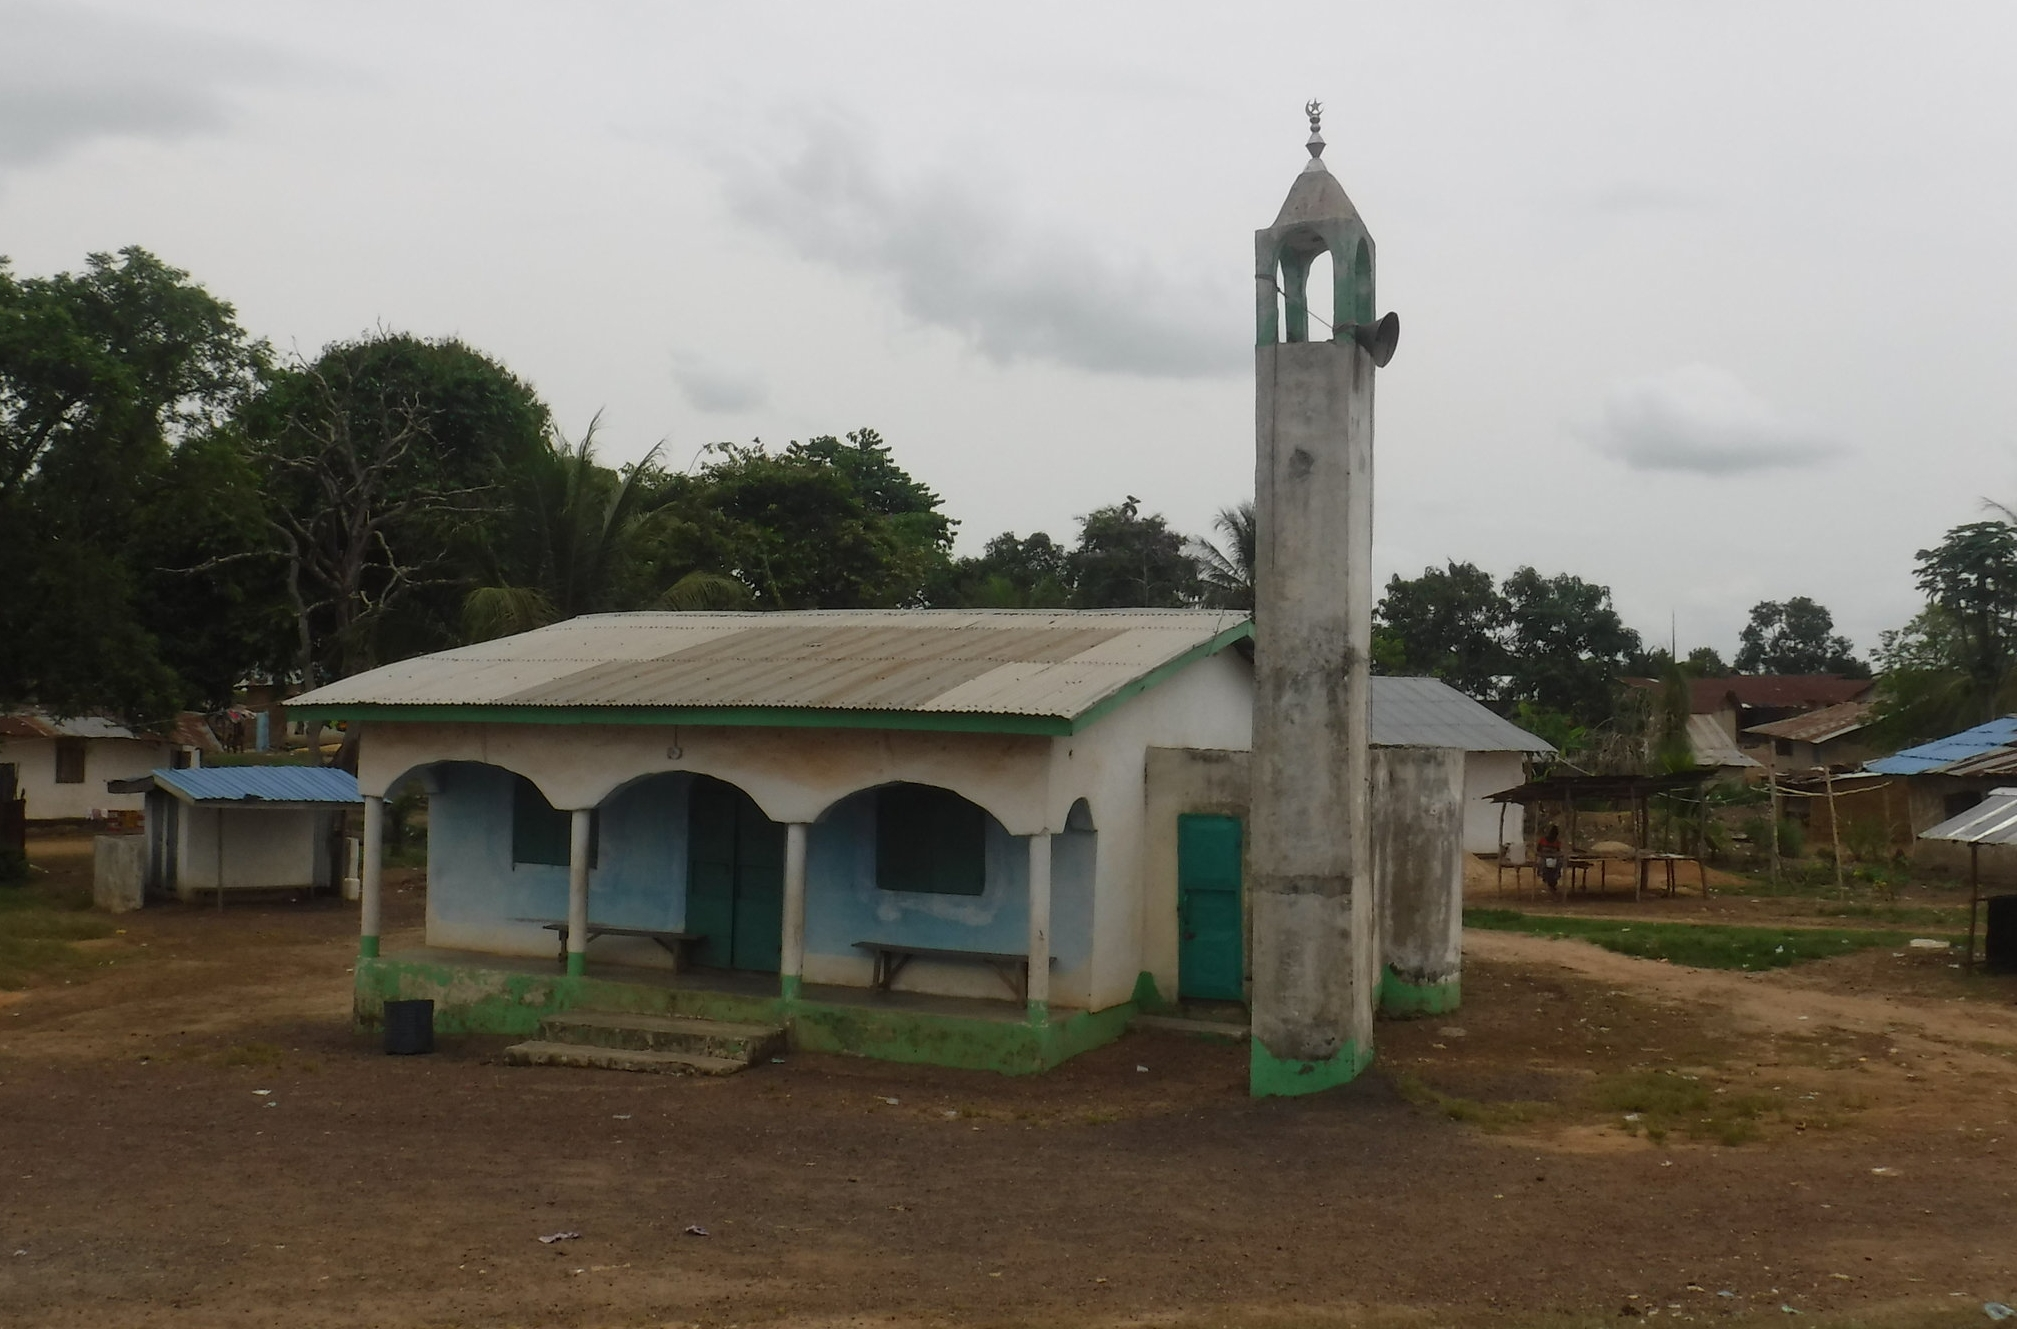 The Liberia Project is seeking to assist Liberian Pastors in the training of their people in how to appropriately testify of the grace of God in the gospel to Muslims in their communities.